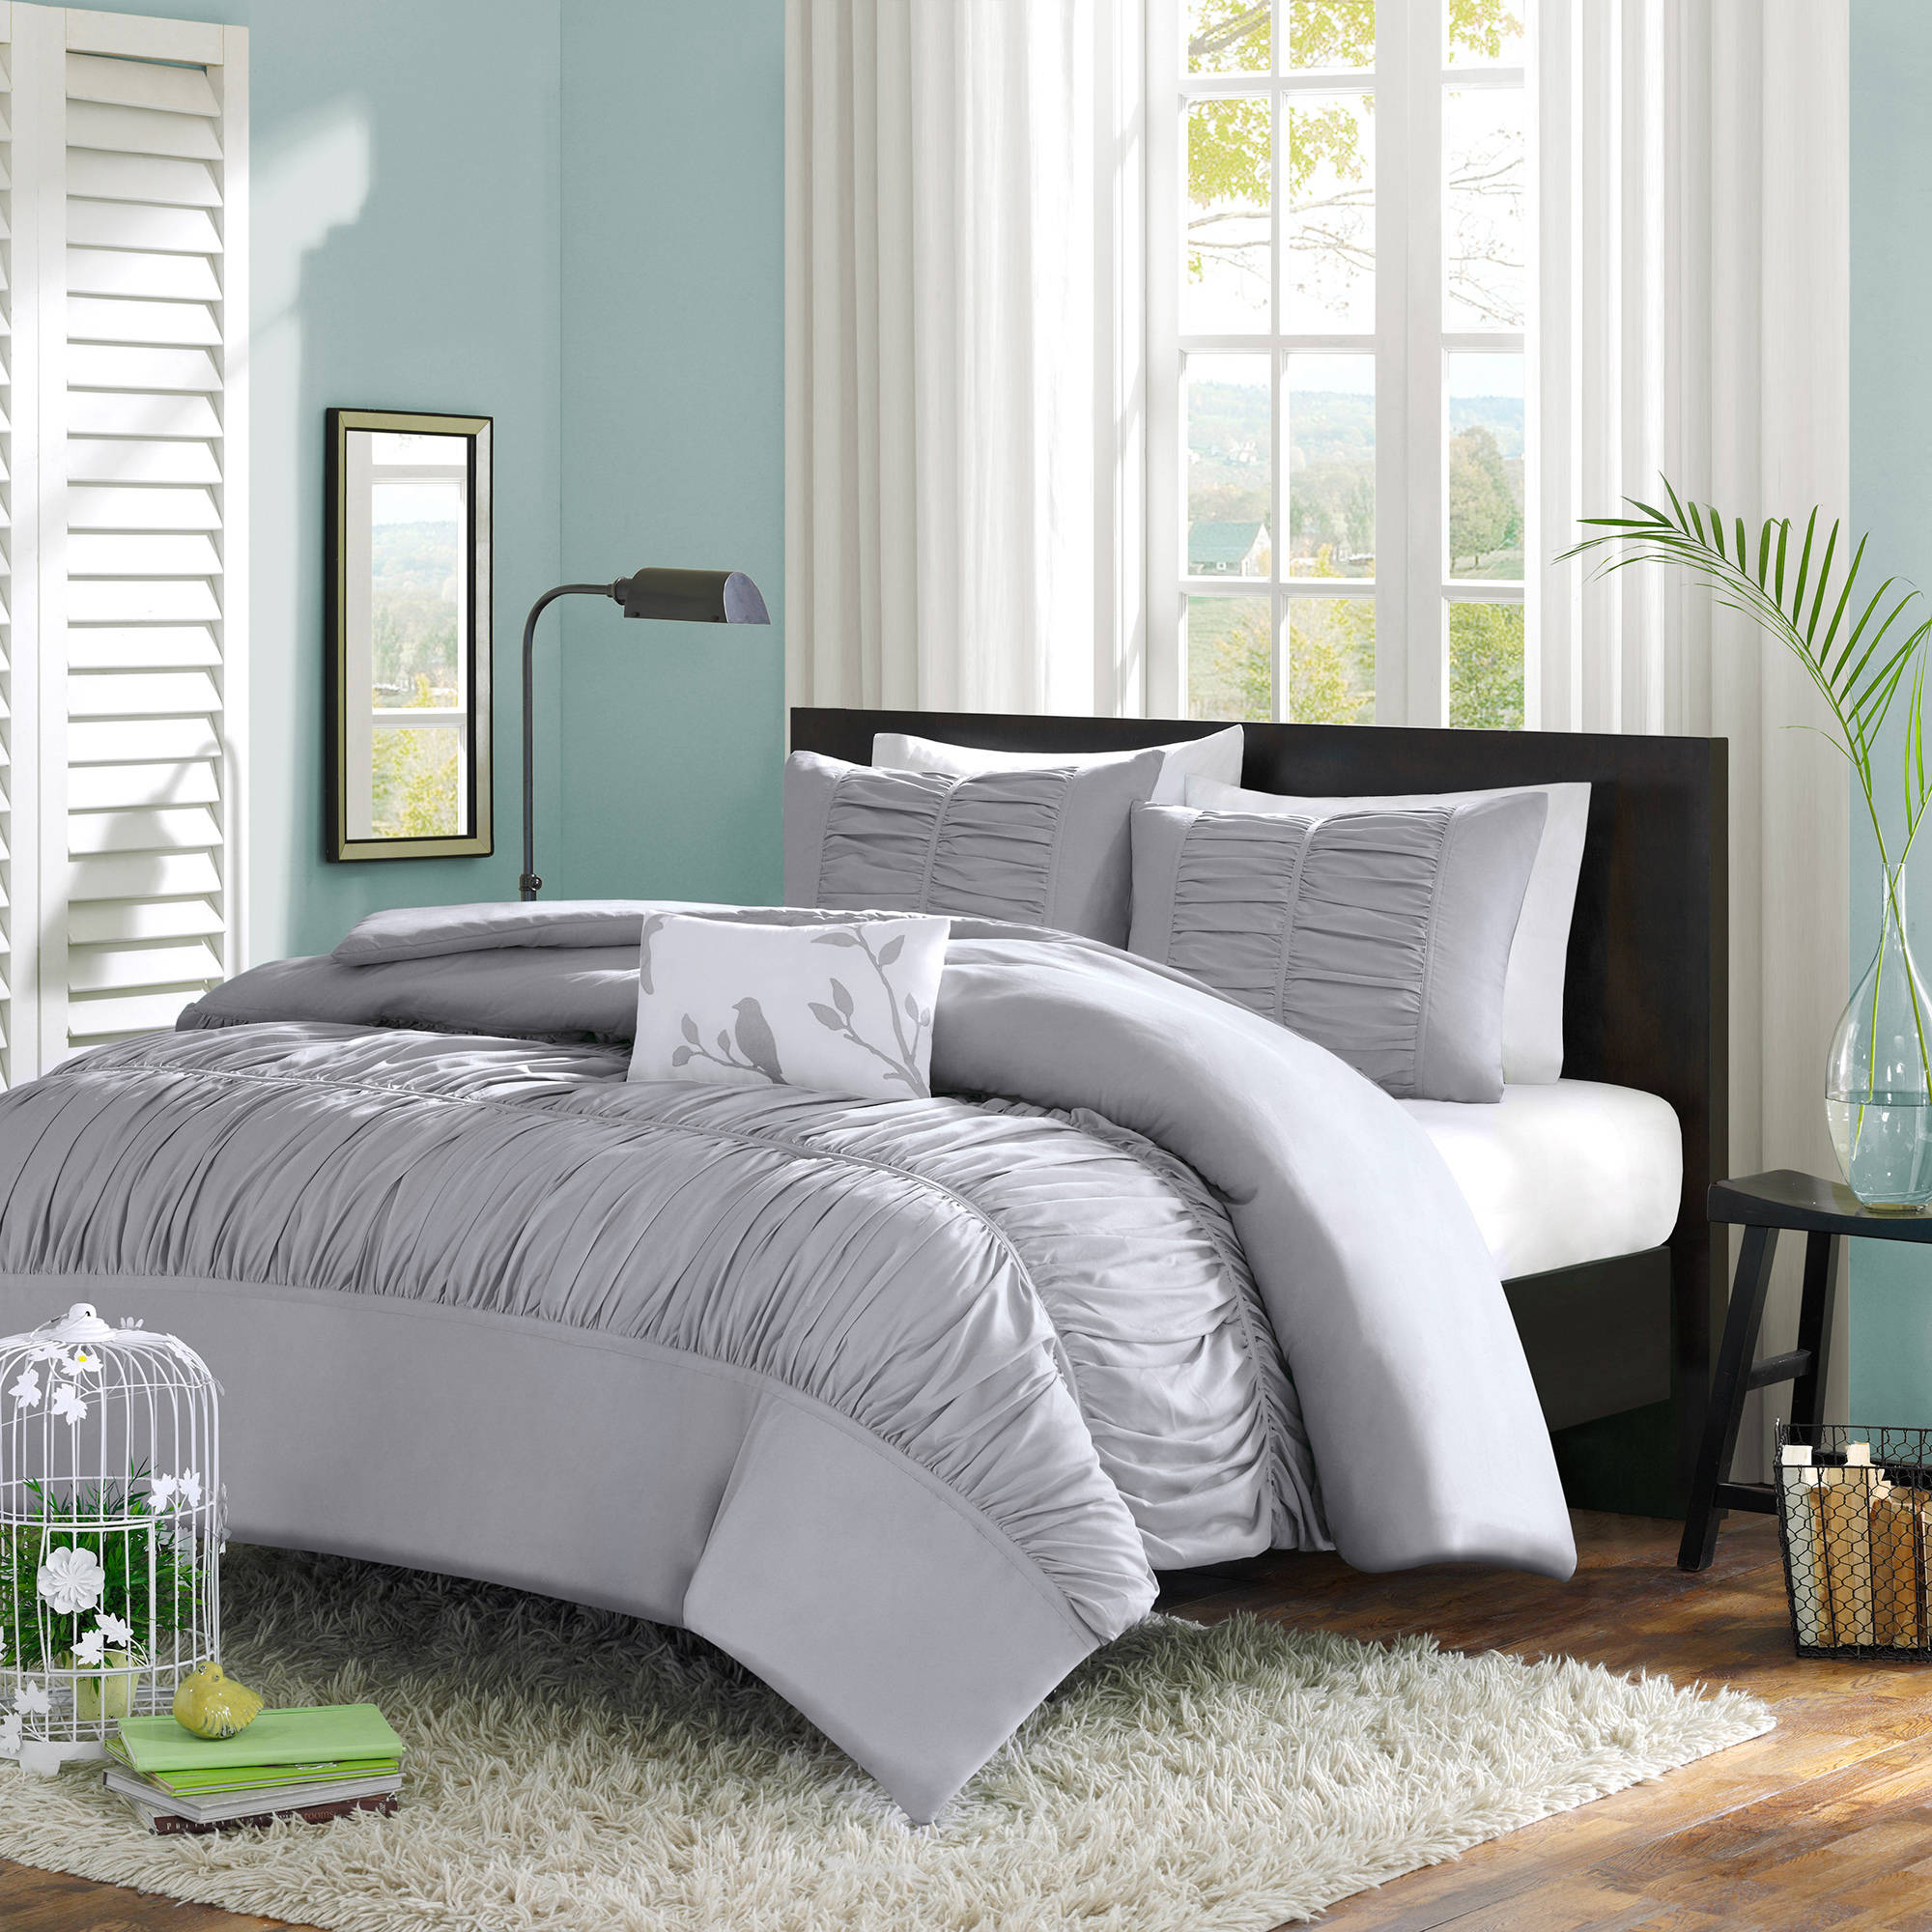 Home Essence Apartment Haley Duvet Cover Set